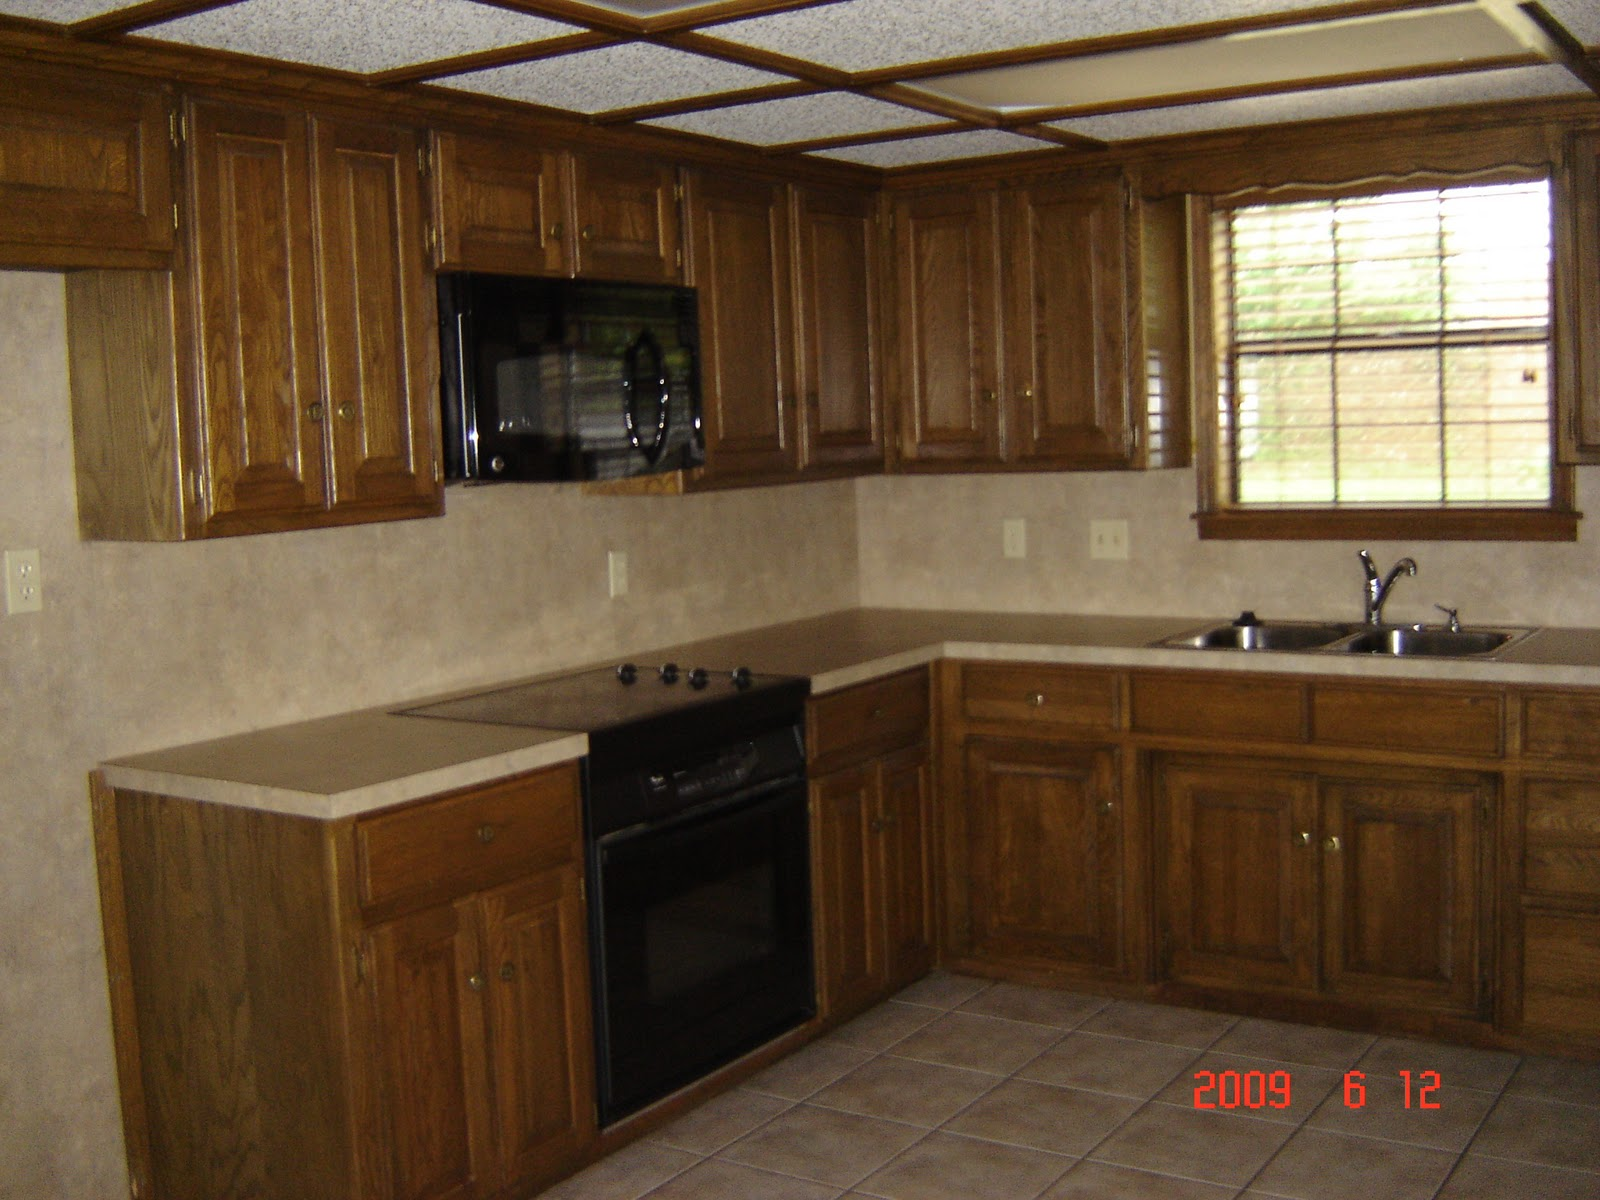 Kitchens with Cabinets to the Ceiling